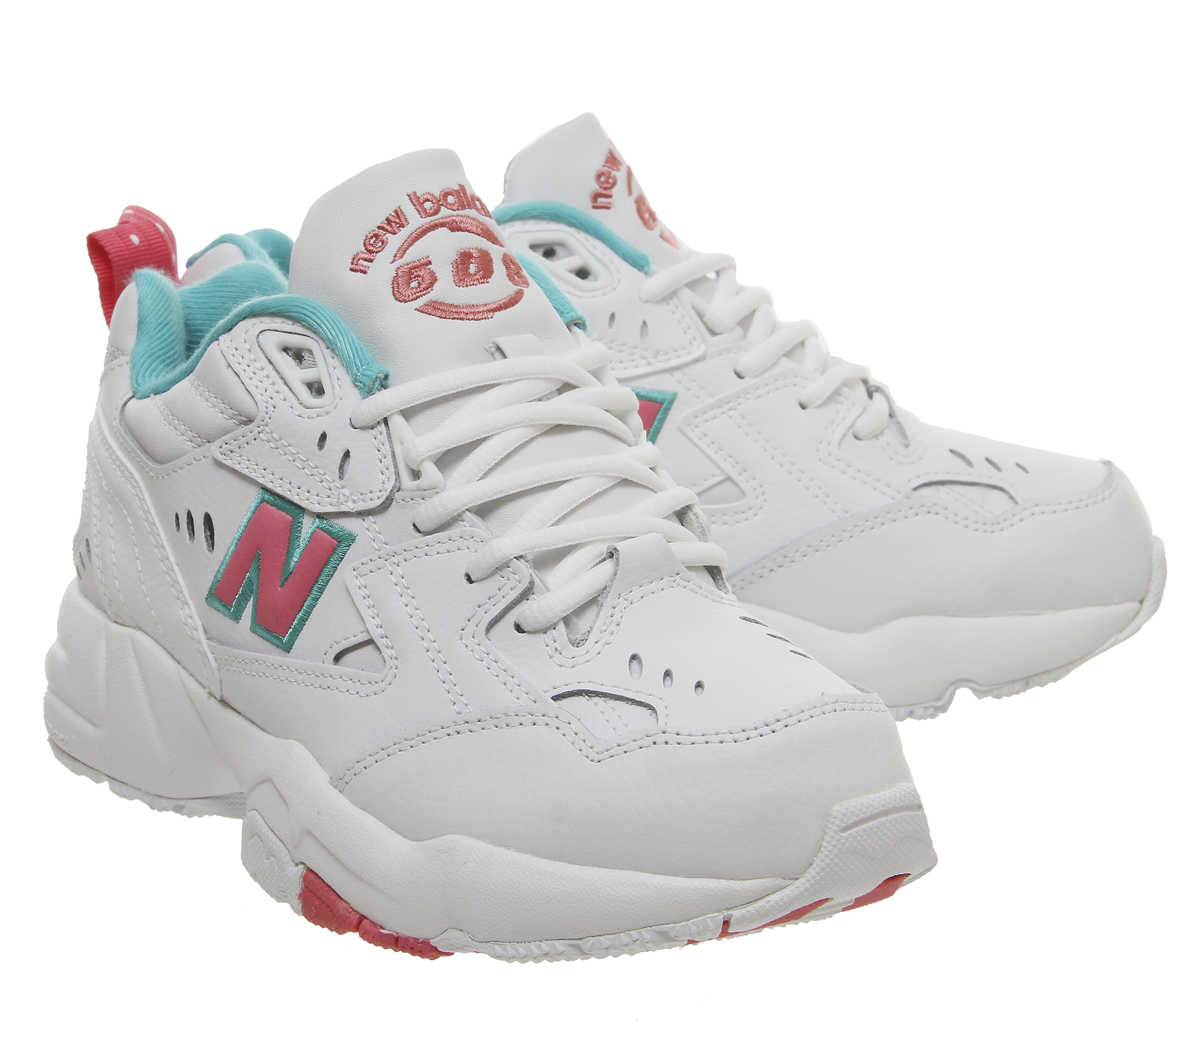 meilleure sélection 80102 d566f Details about Womens New Balance 608 Trainers White Pink Green Trainers  Shoes